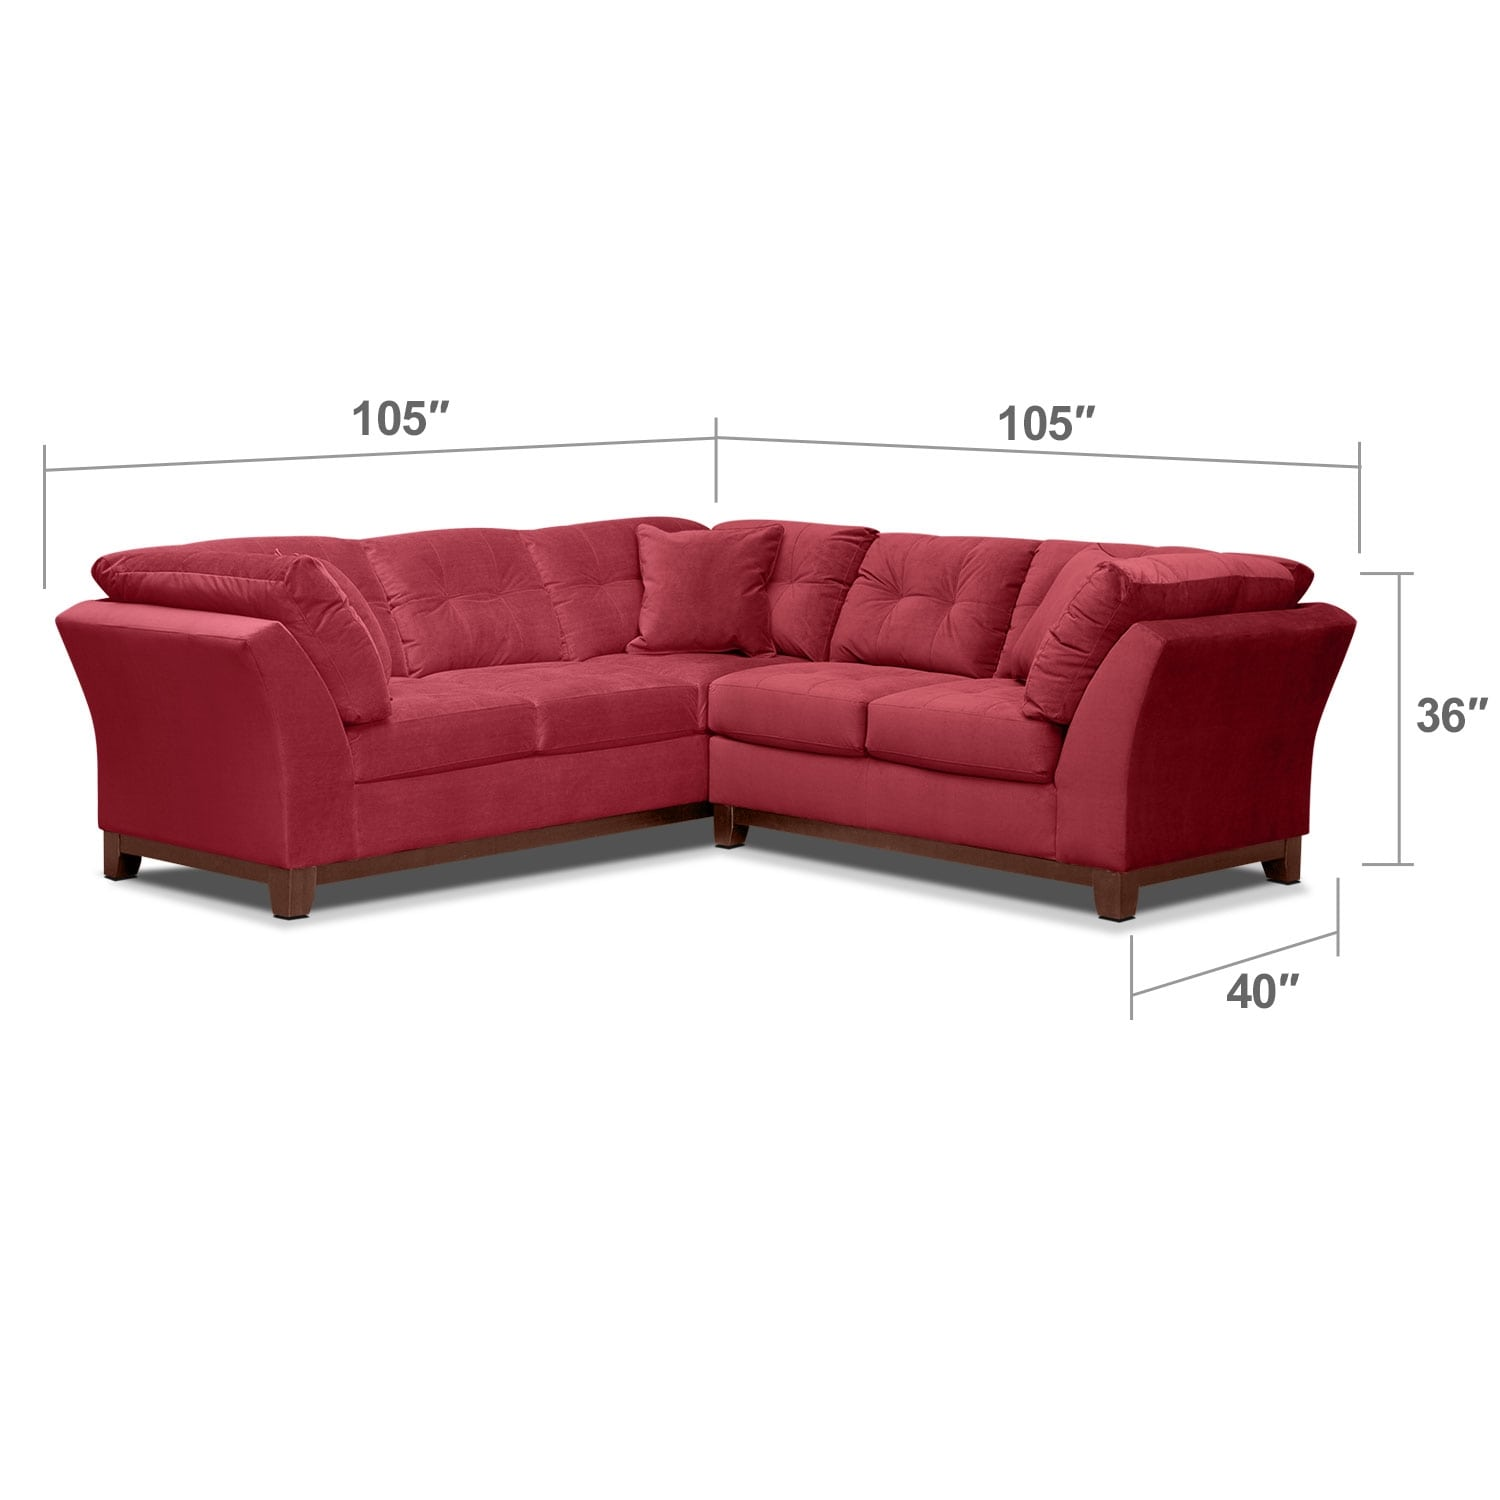 "Living Room Furniture - Solace 2-Piece Left-Facing 105"" Sofa Sectional - Poppy"